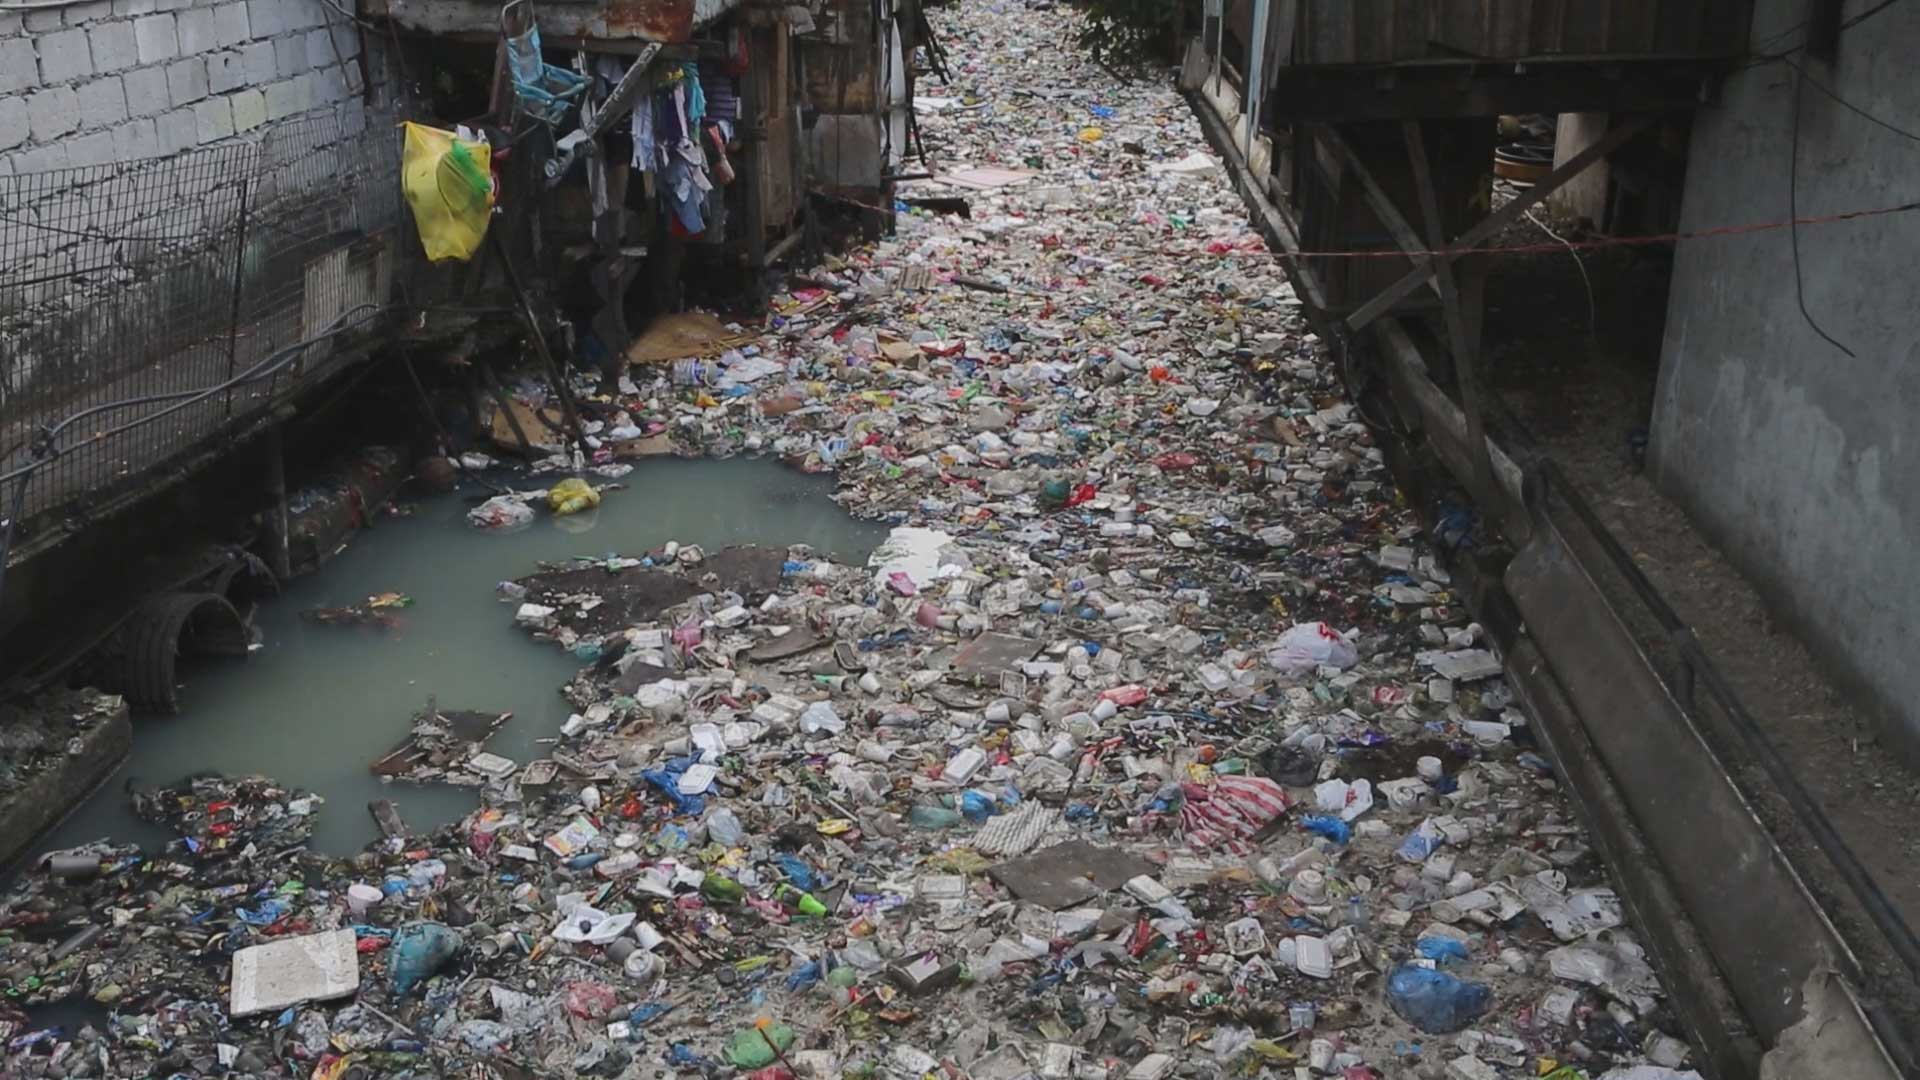 Waste flows in the Estero de Magdalena, one of the main estuaries in Manila, Philippines.